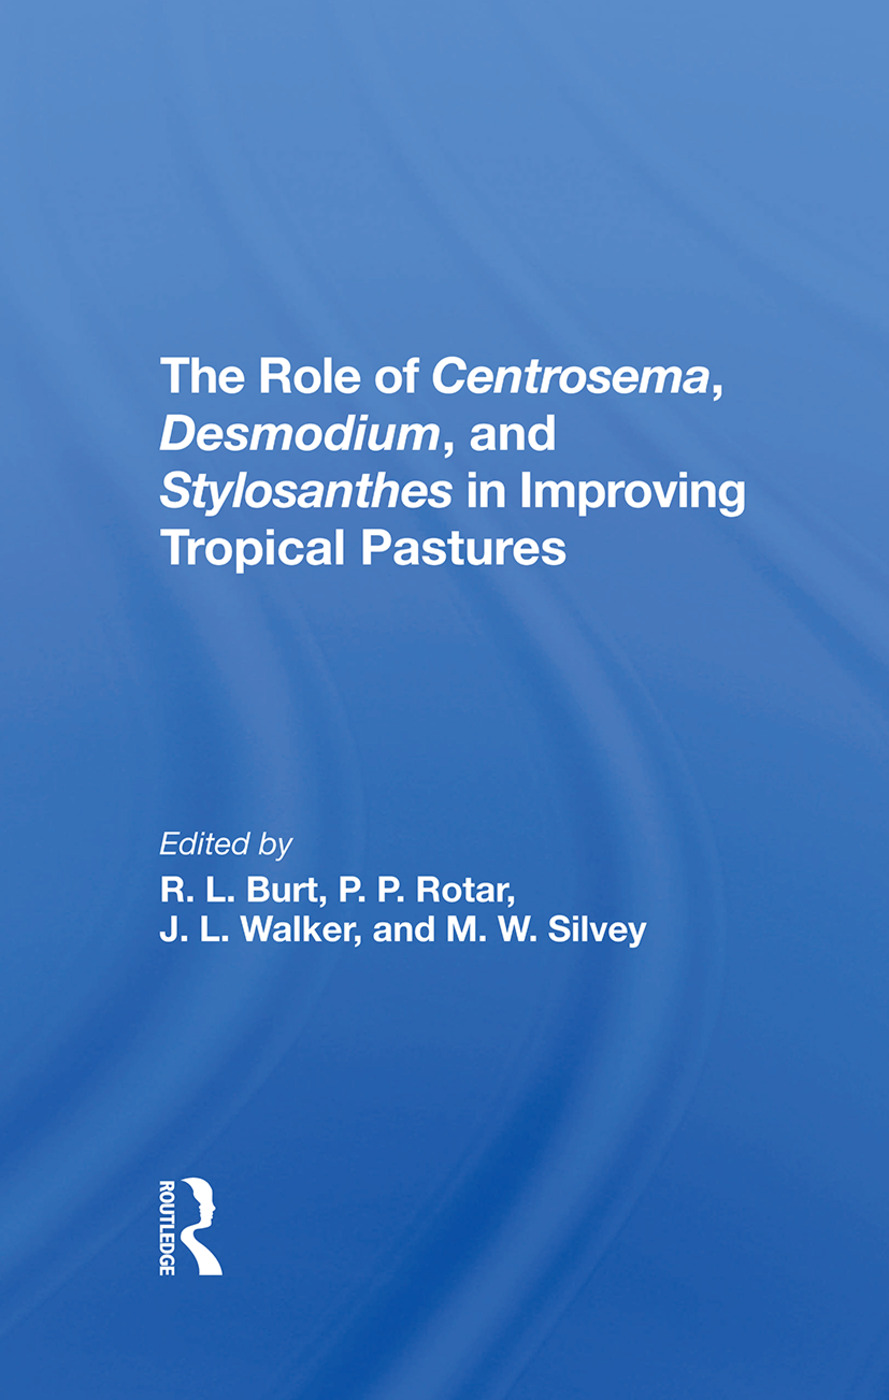 The Role Of Centrosema, Desmodium, And Stylosanthes In Improving Tropical Pastures: 1st Edition (Hardback) book cover